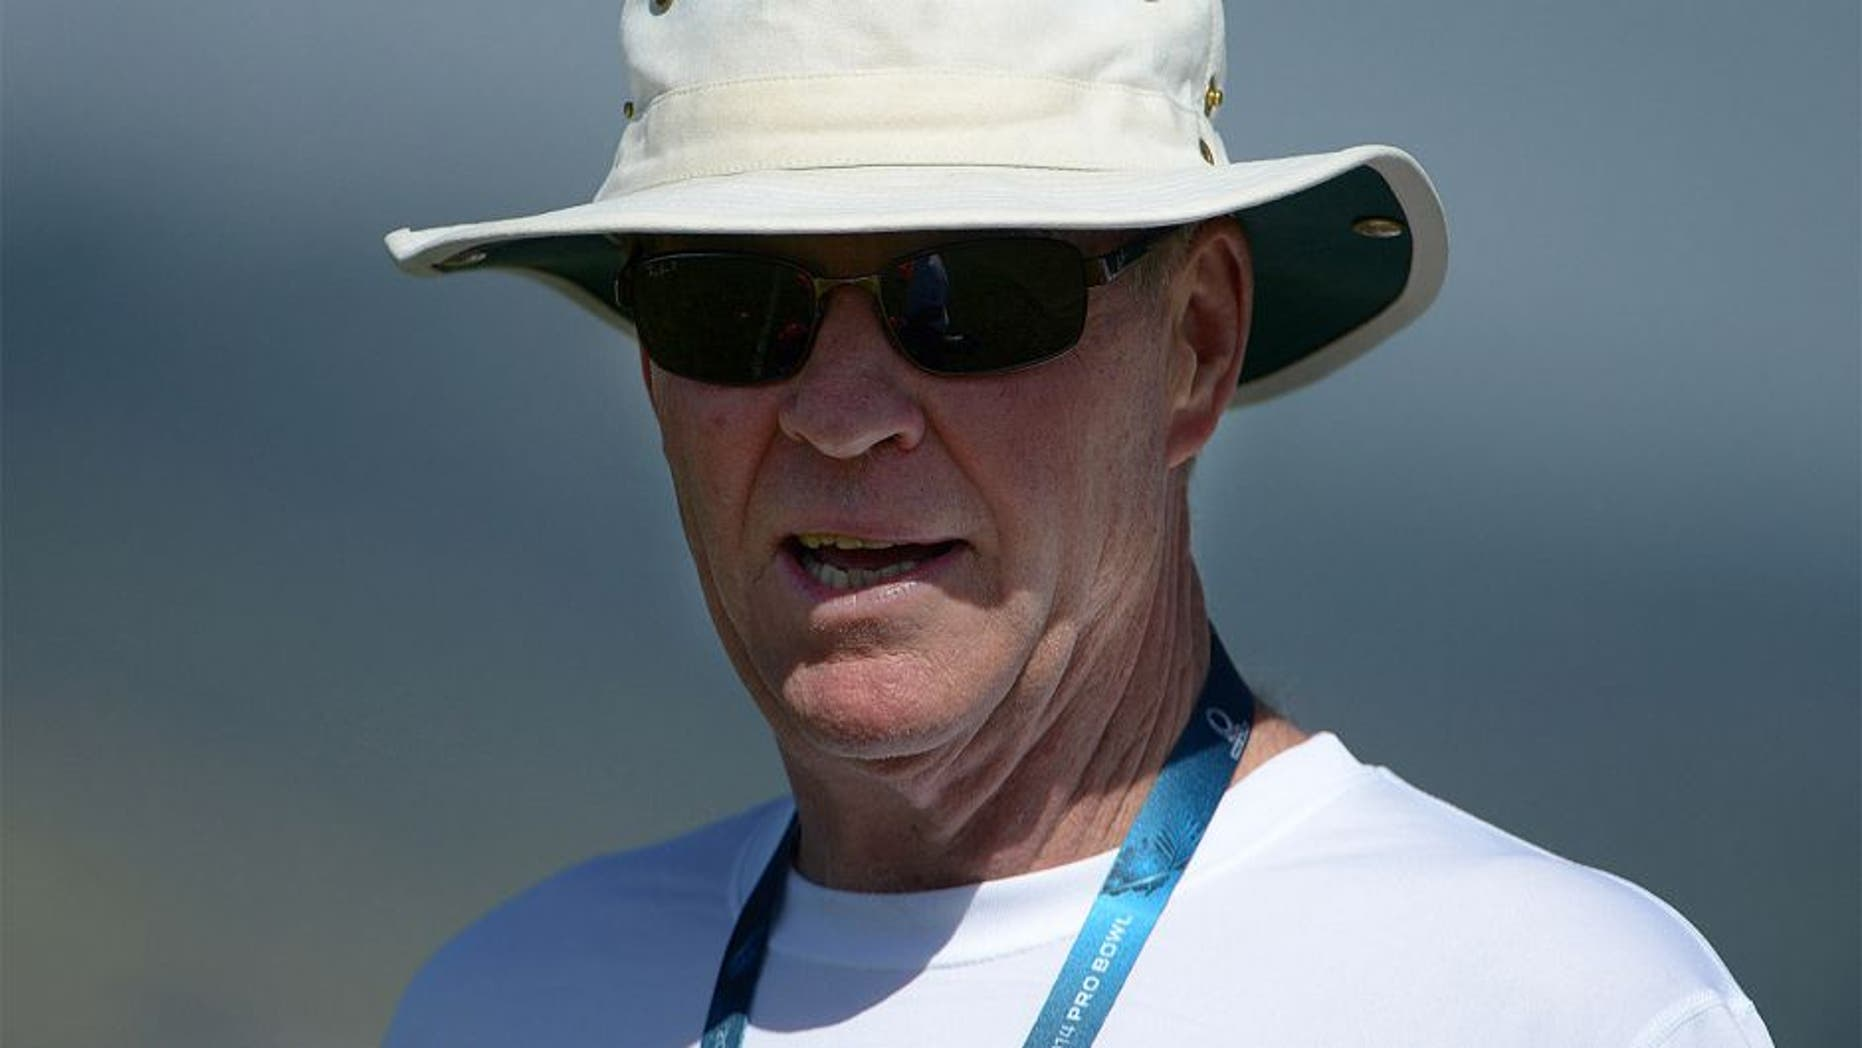 January 24, 2014; Kapolei, HI, USA; Carolina Panthers assistant special teams coach Bruce DeHaven during the 2014 Pro Bowl practice at Kapolei High School. Mandatory Credit: Kirby Lee-USA TODAY Sports